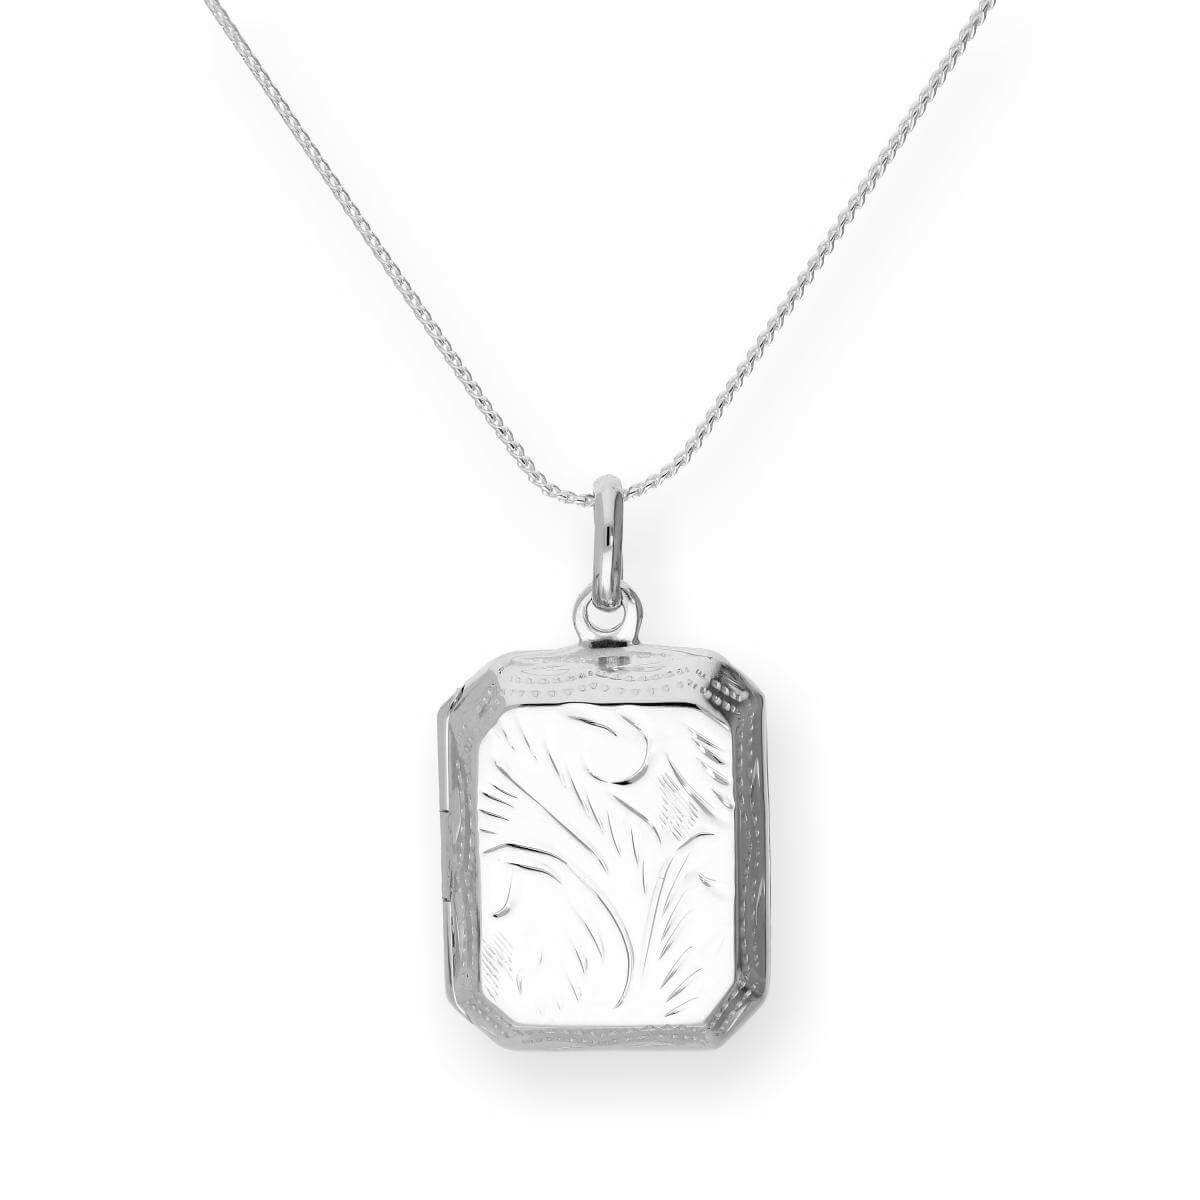 Sterling Silver Engraved Octagonal Locket on Chain 16 - 22 Inches